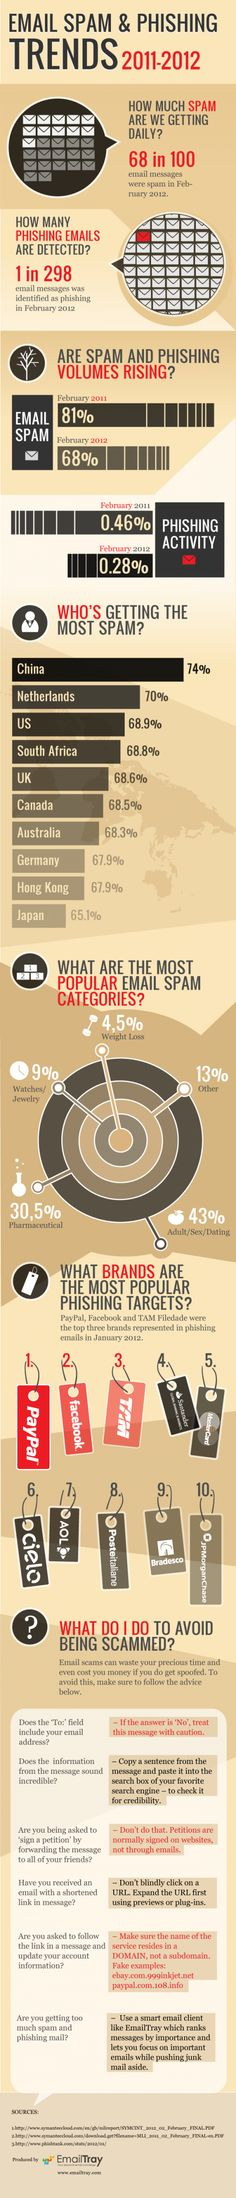 Email spam & phishing trends. #infografia #infographic